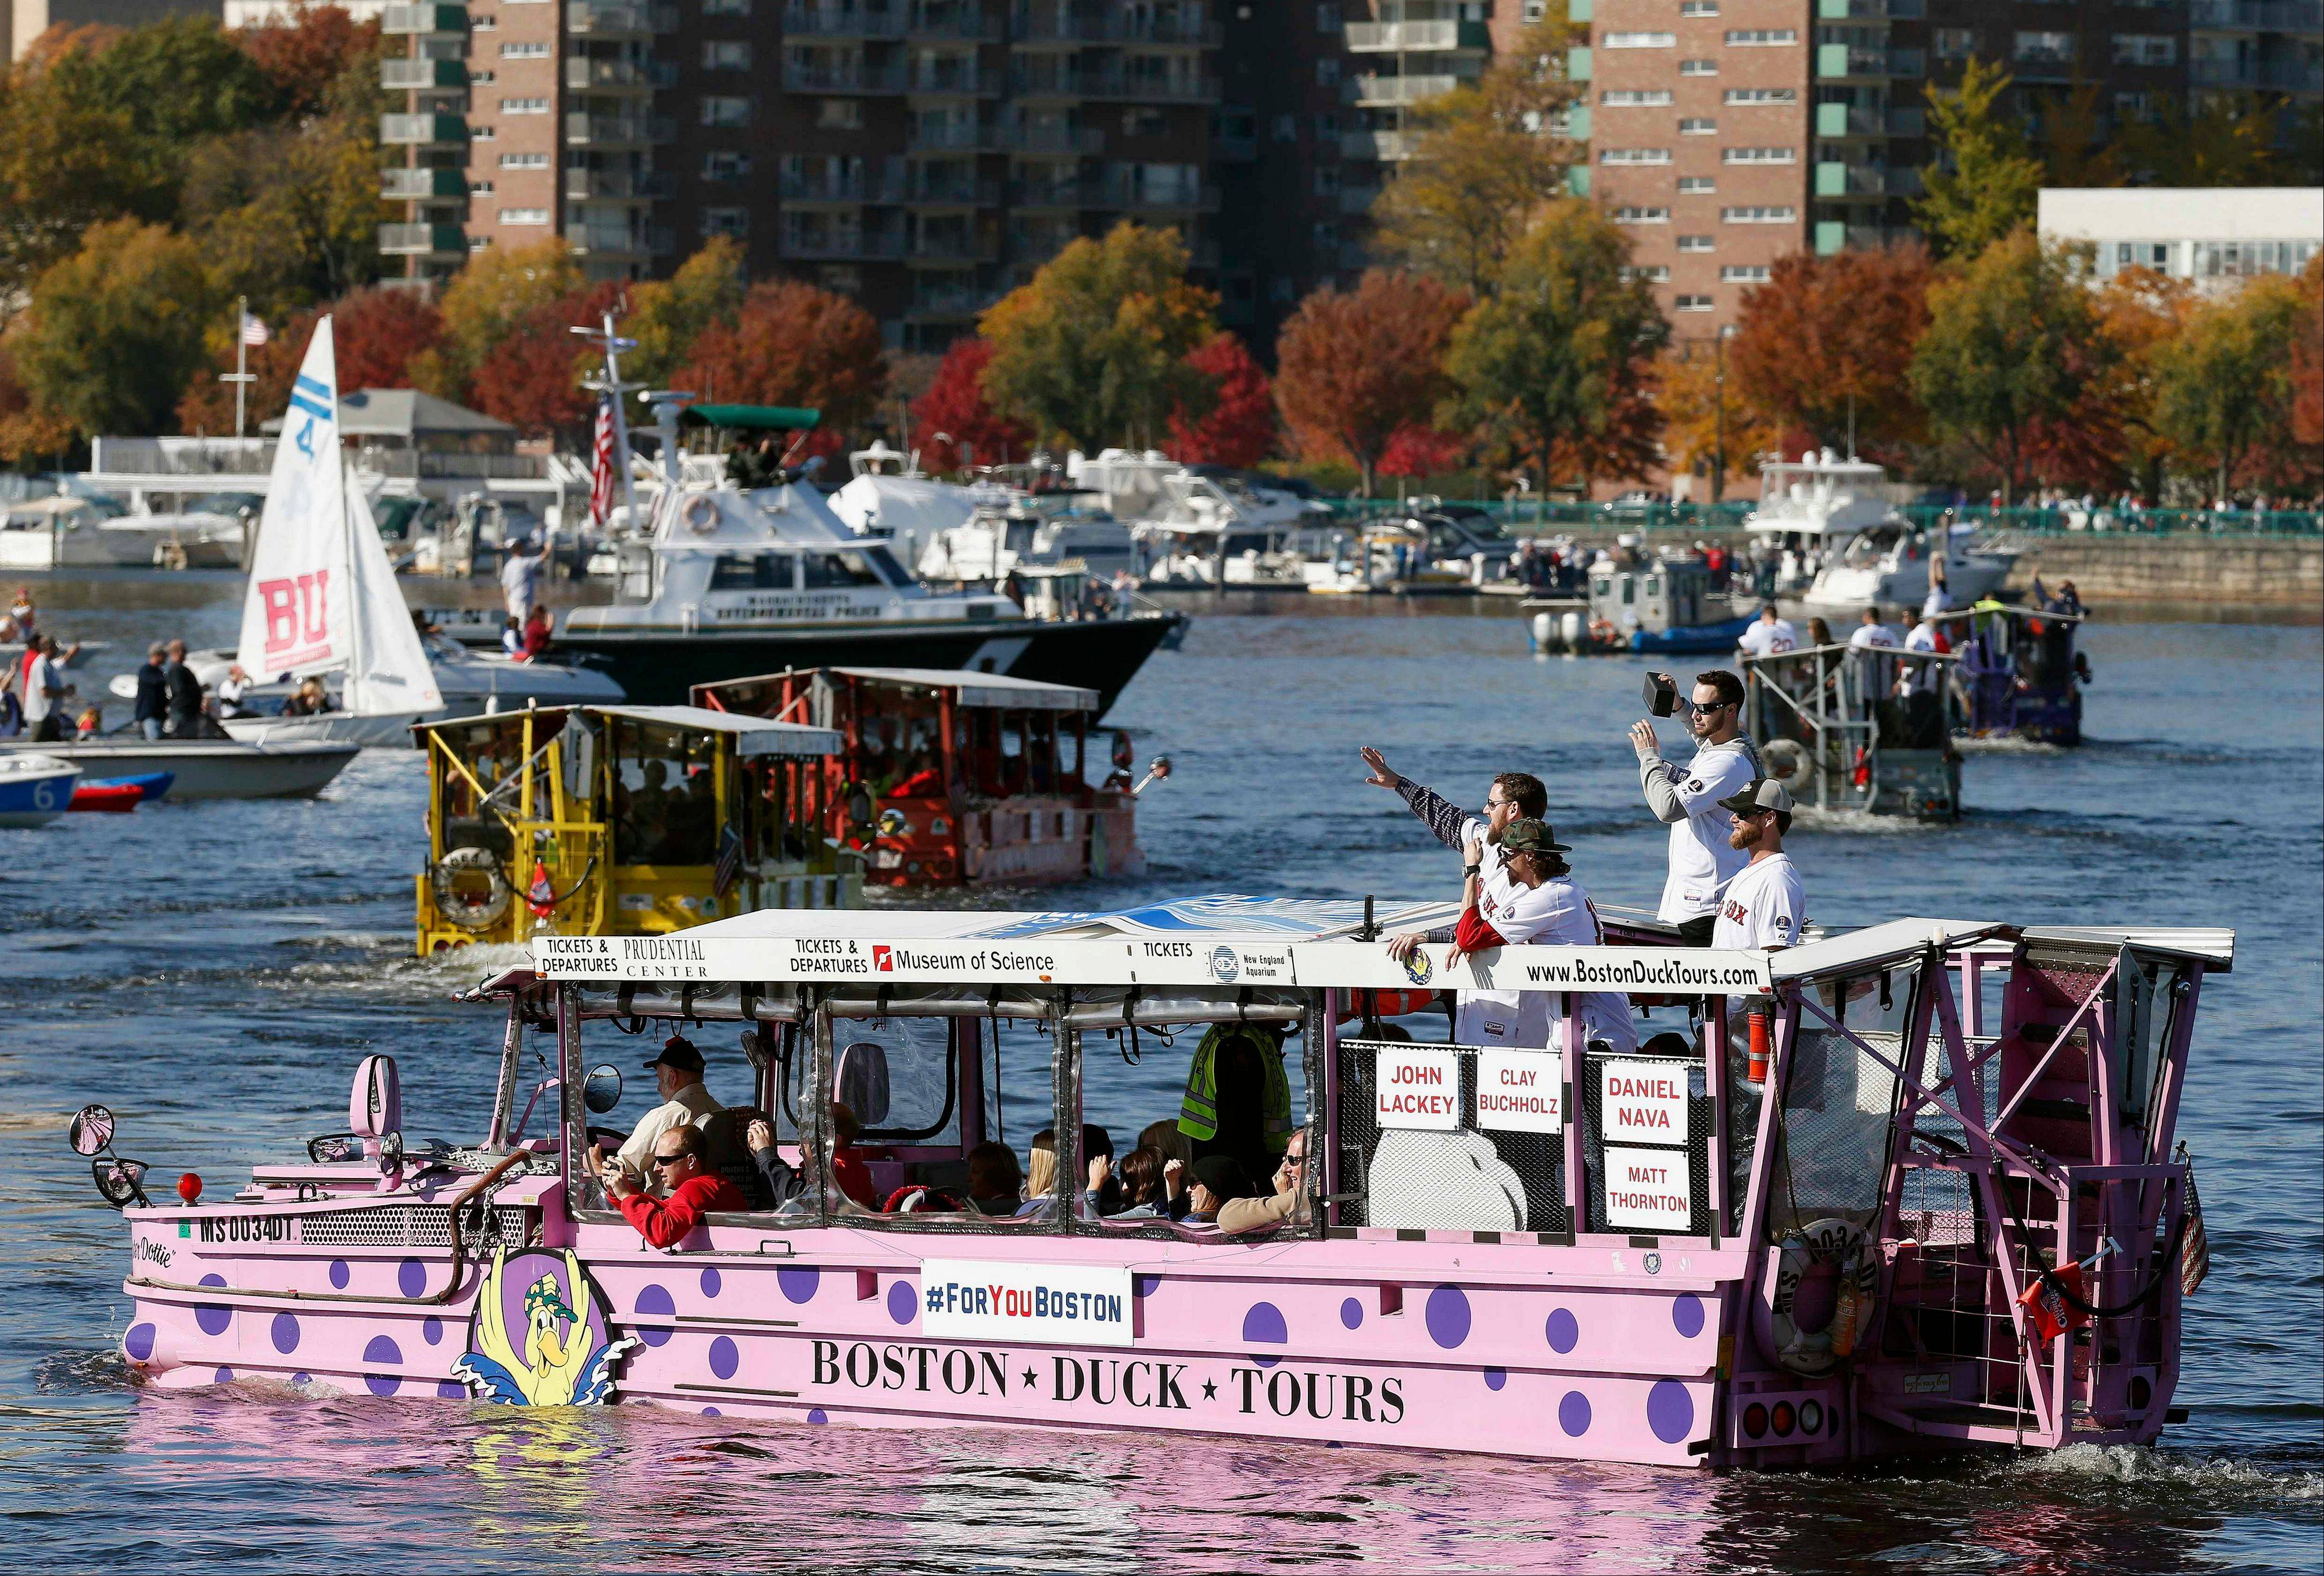 Boston Red Sox players wave from Duck Boats on the Charles River during a rolling victory parade celebrating the team's World Series title.